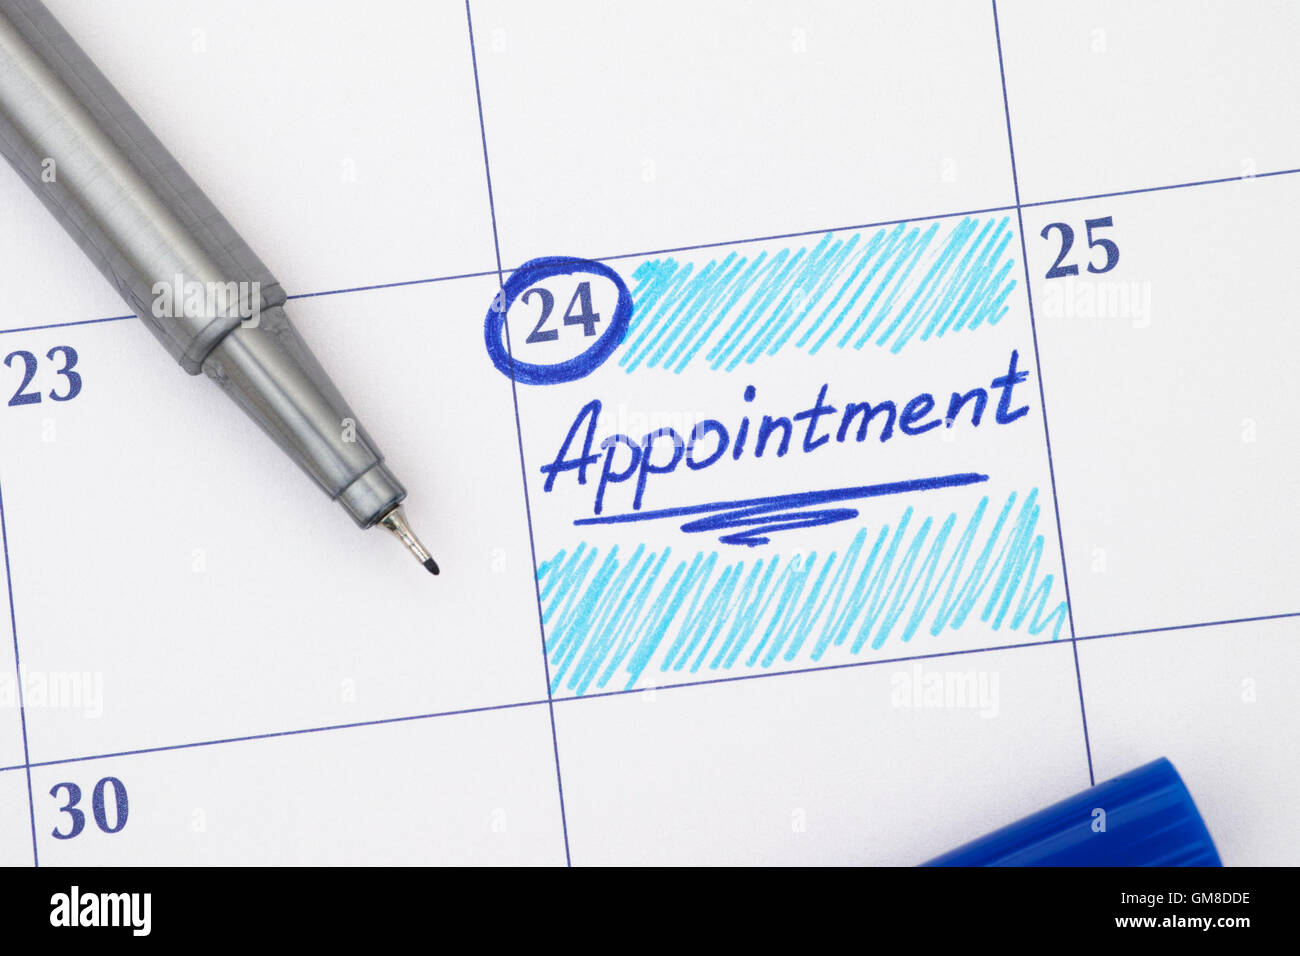 Reminder Appointment in calendar with blue pen - Stock Image